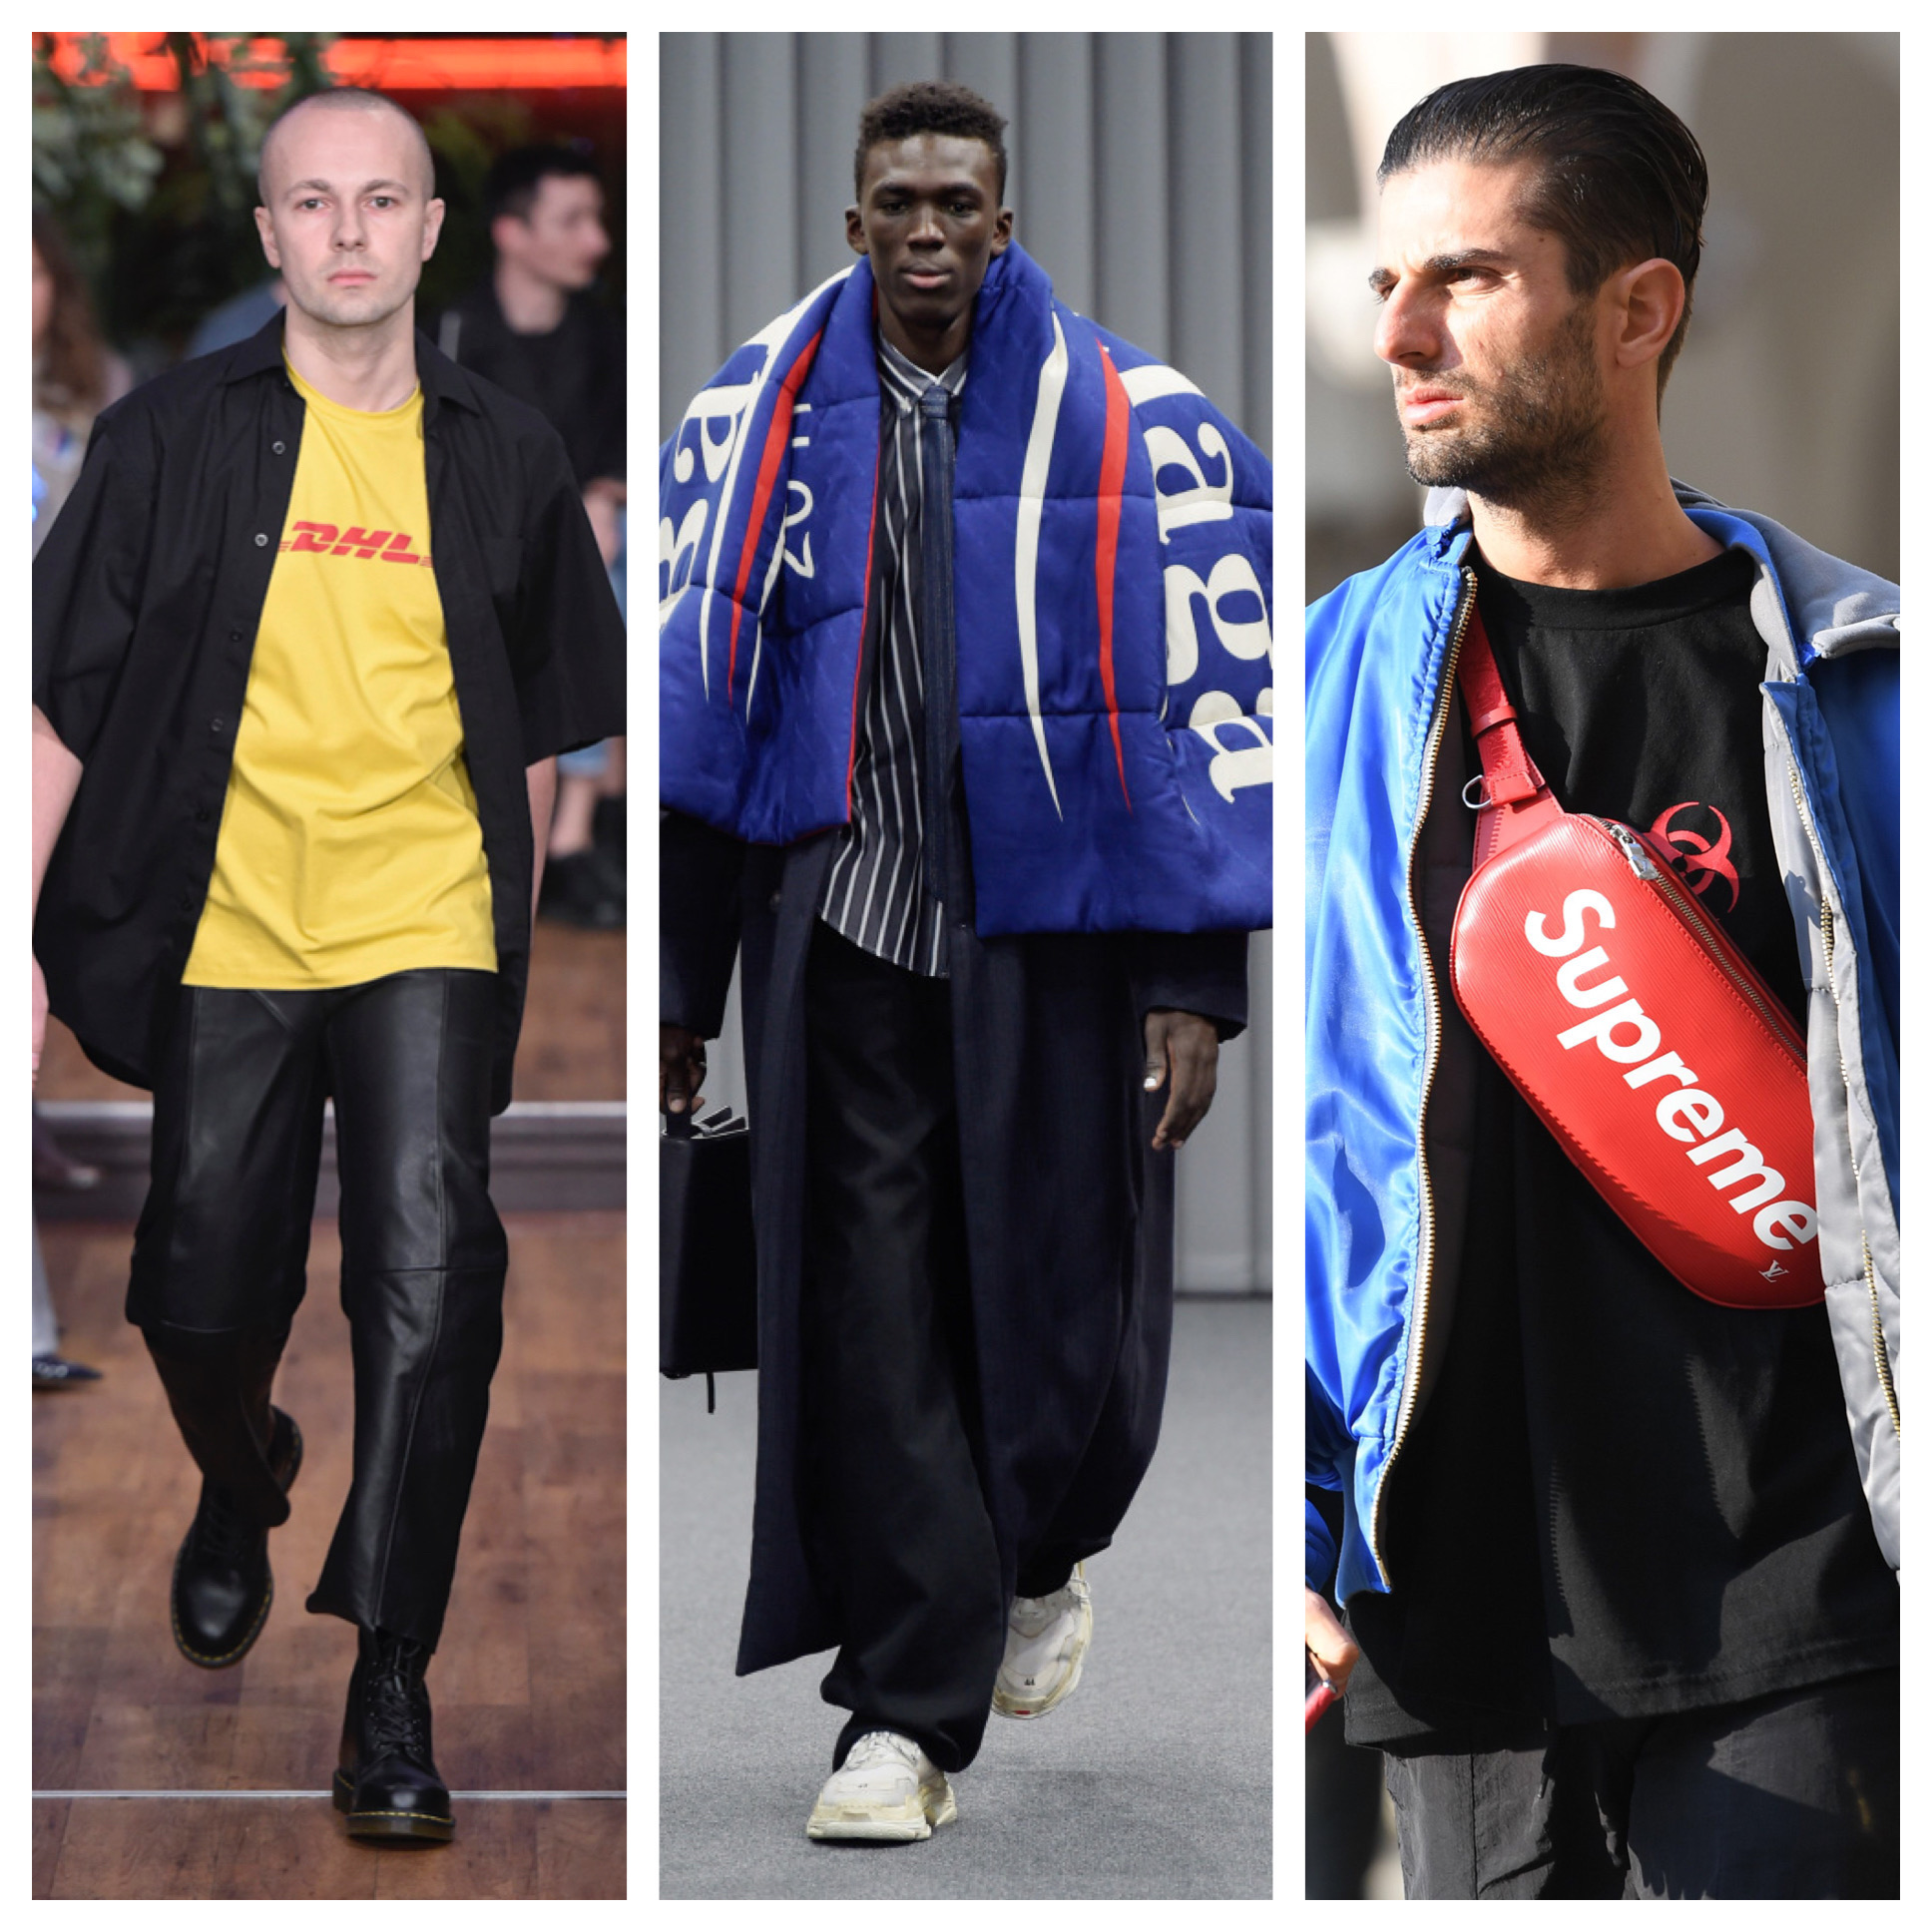 The 7 Fashion Trends That Defined the 2010s